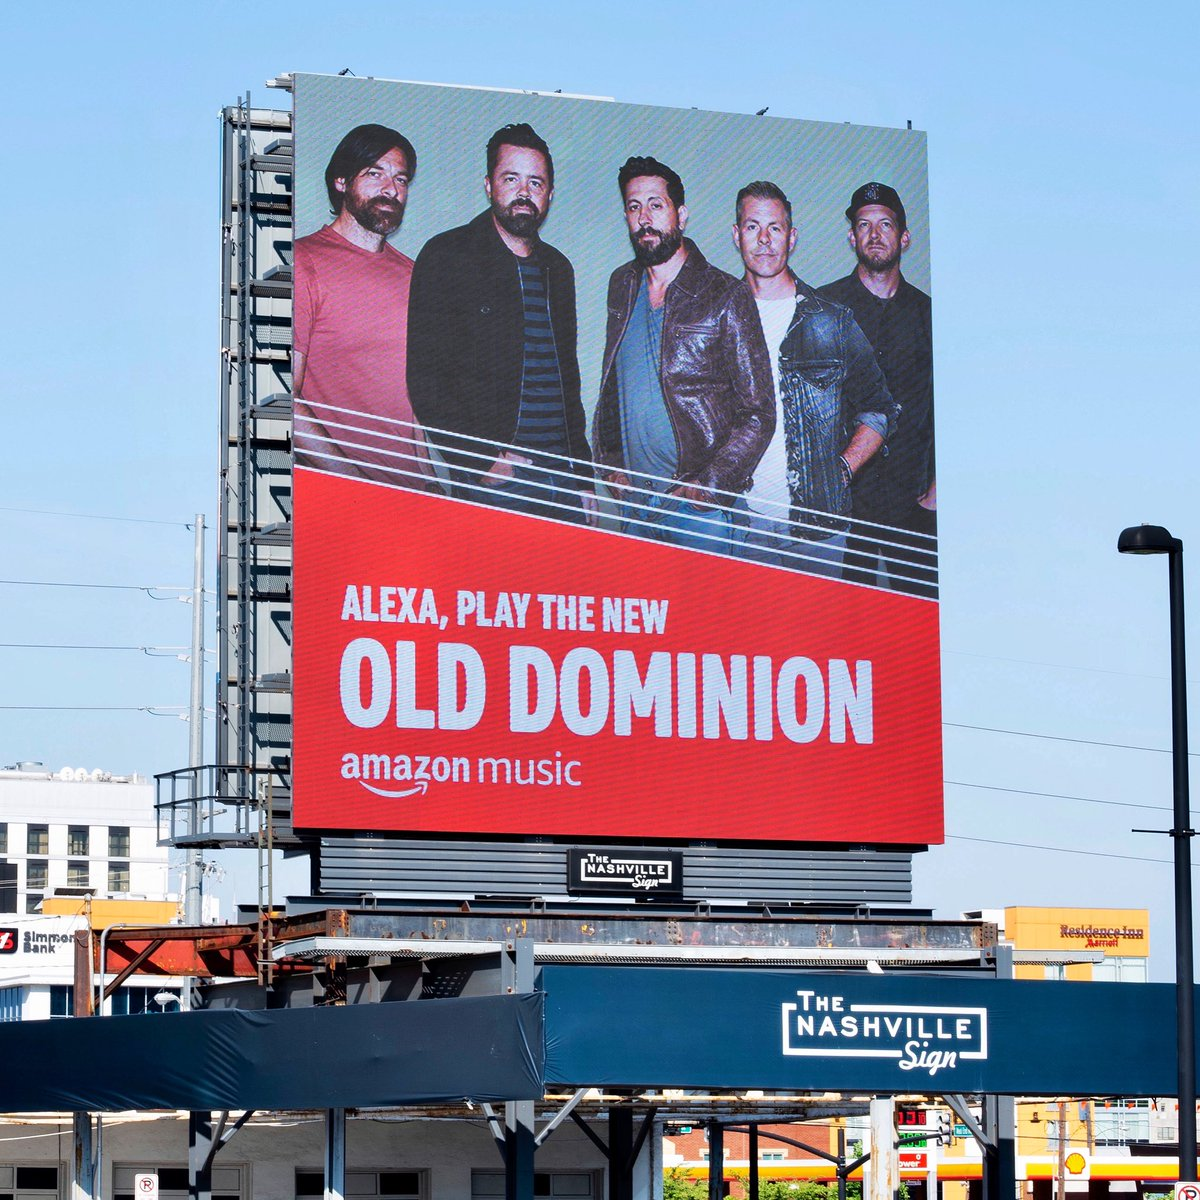 Thanks @amazonmusic. Y'all ask Alexa to play the new Old Dominion album. music.amazon.com/albums/B08BWFR… #dancingforever #everythingtolose #previouslyunreleased #olddominion